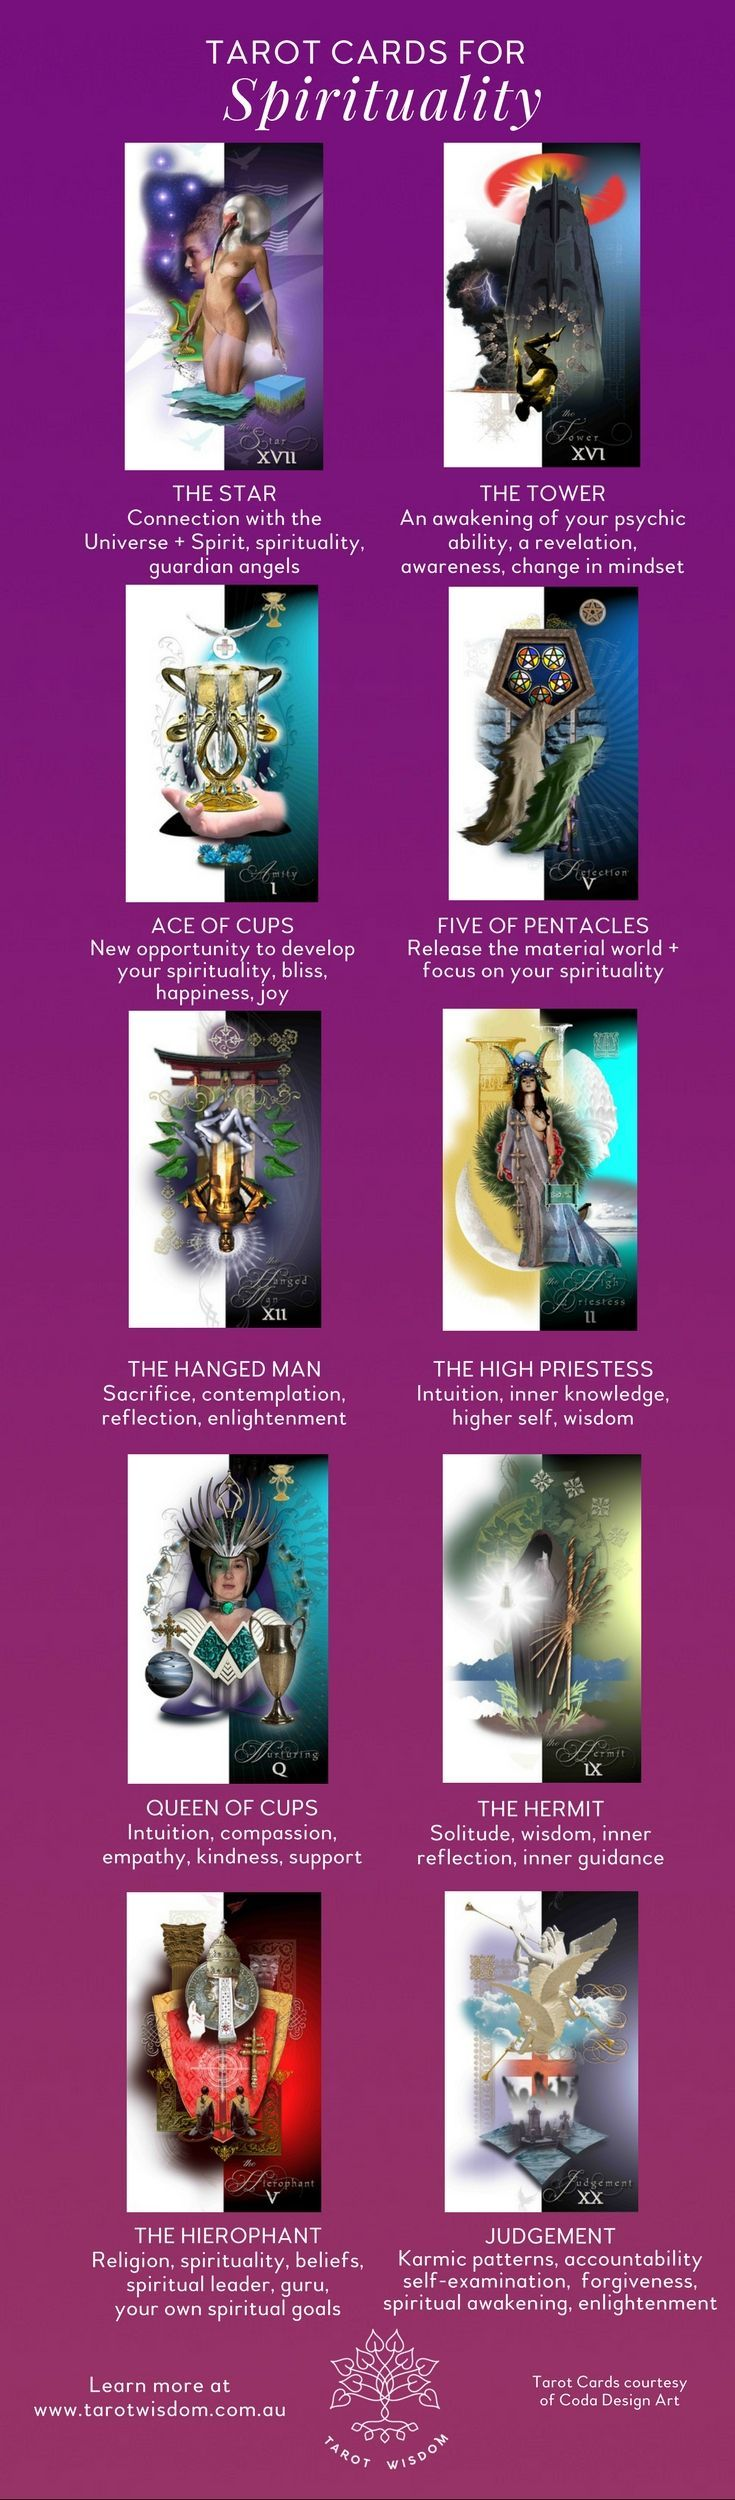 The top #Tarot Cards for #Spirituality. To learn more about Tarot visit the website: www.tarotwisdom.com.au #tarotcardscheatsheets